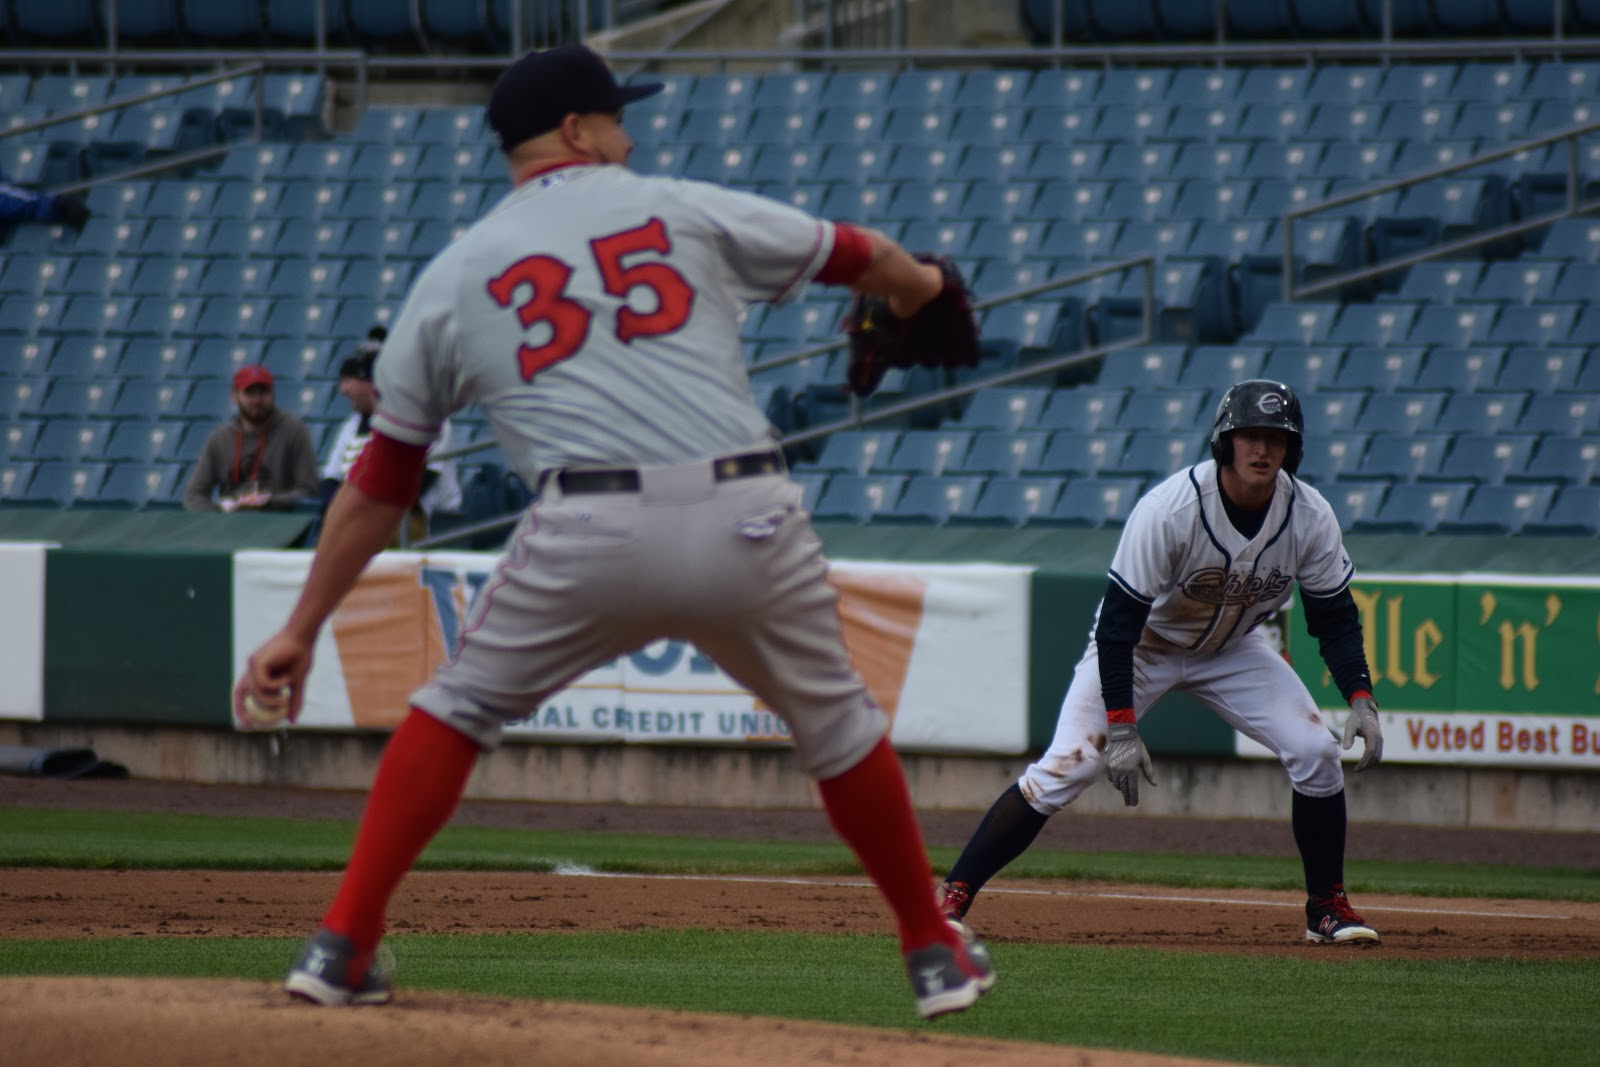 PawSox Take Opener Over Chiefs